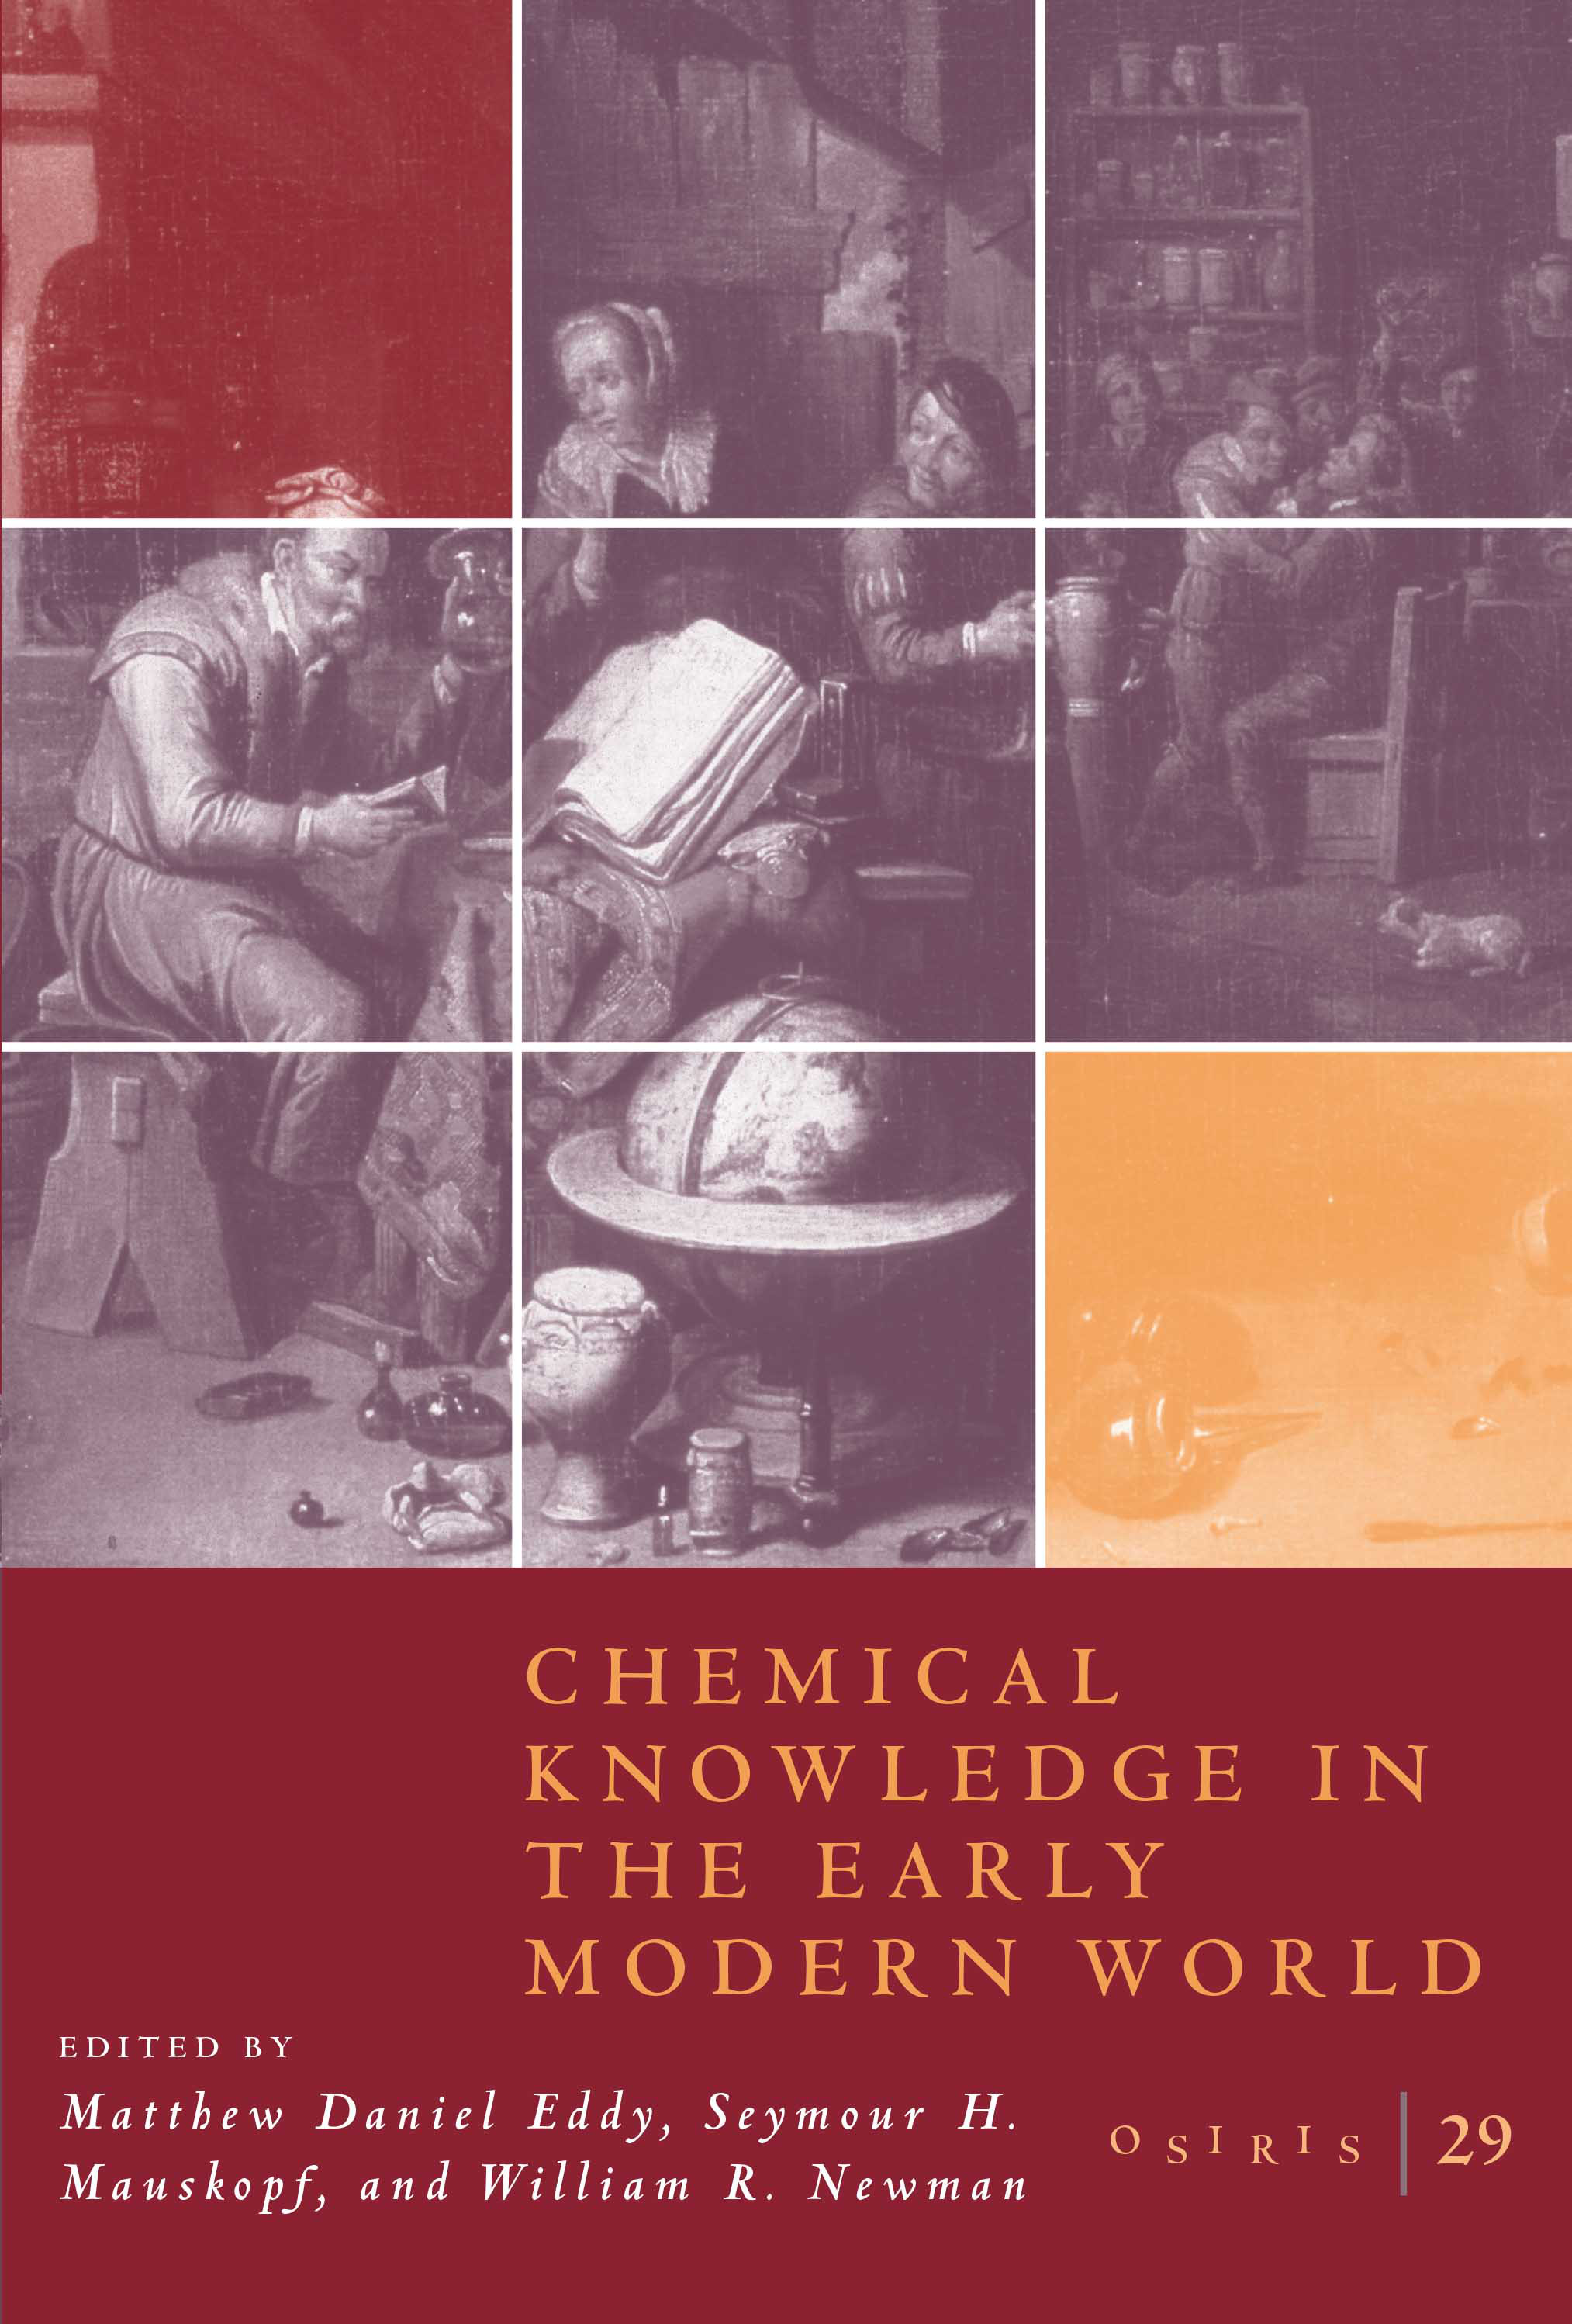 Osiris, Volume 29: Chemical Knowledge in the Early Modern World